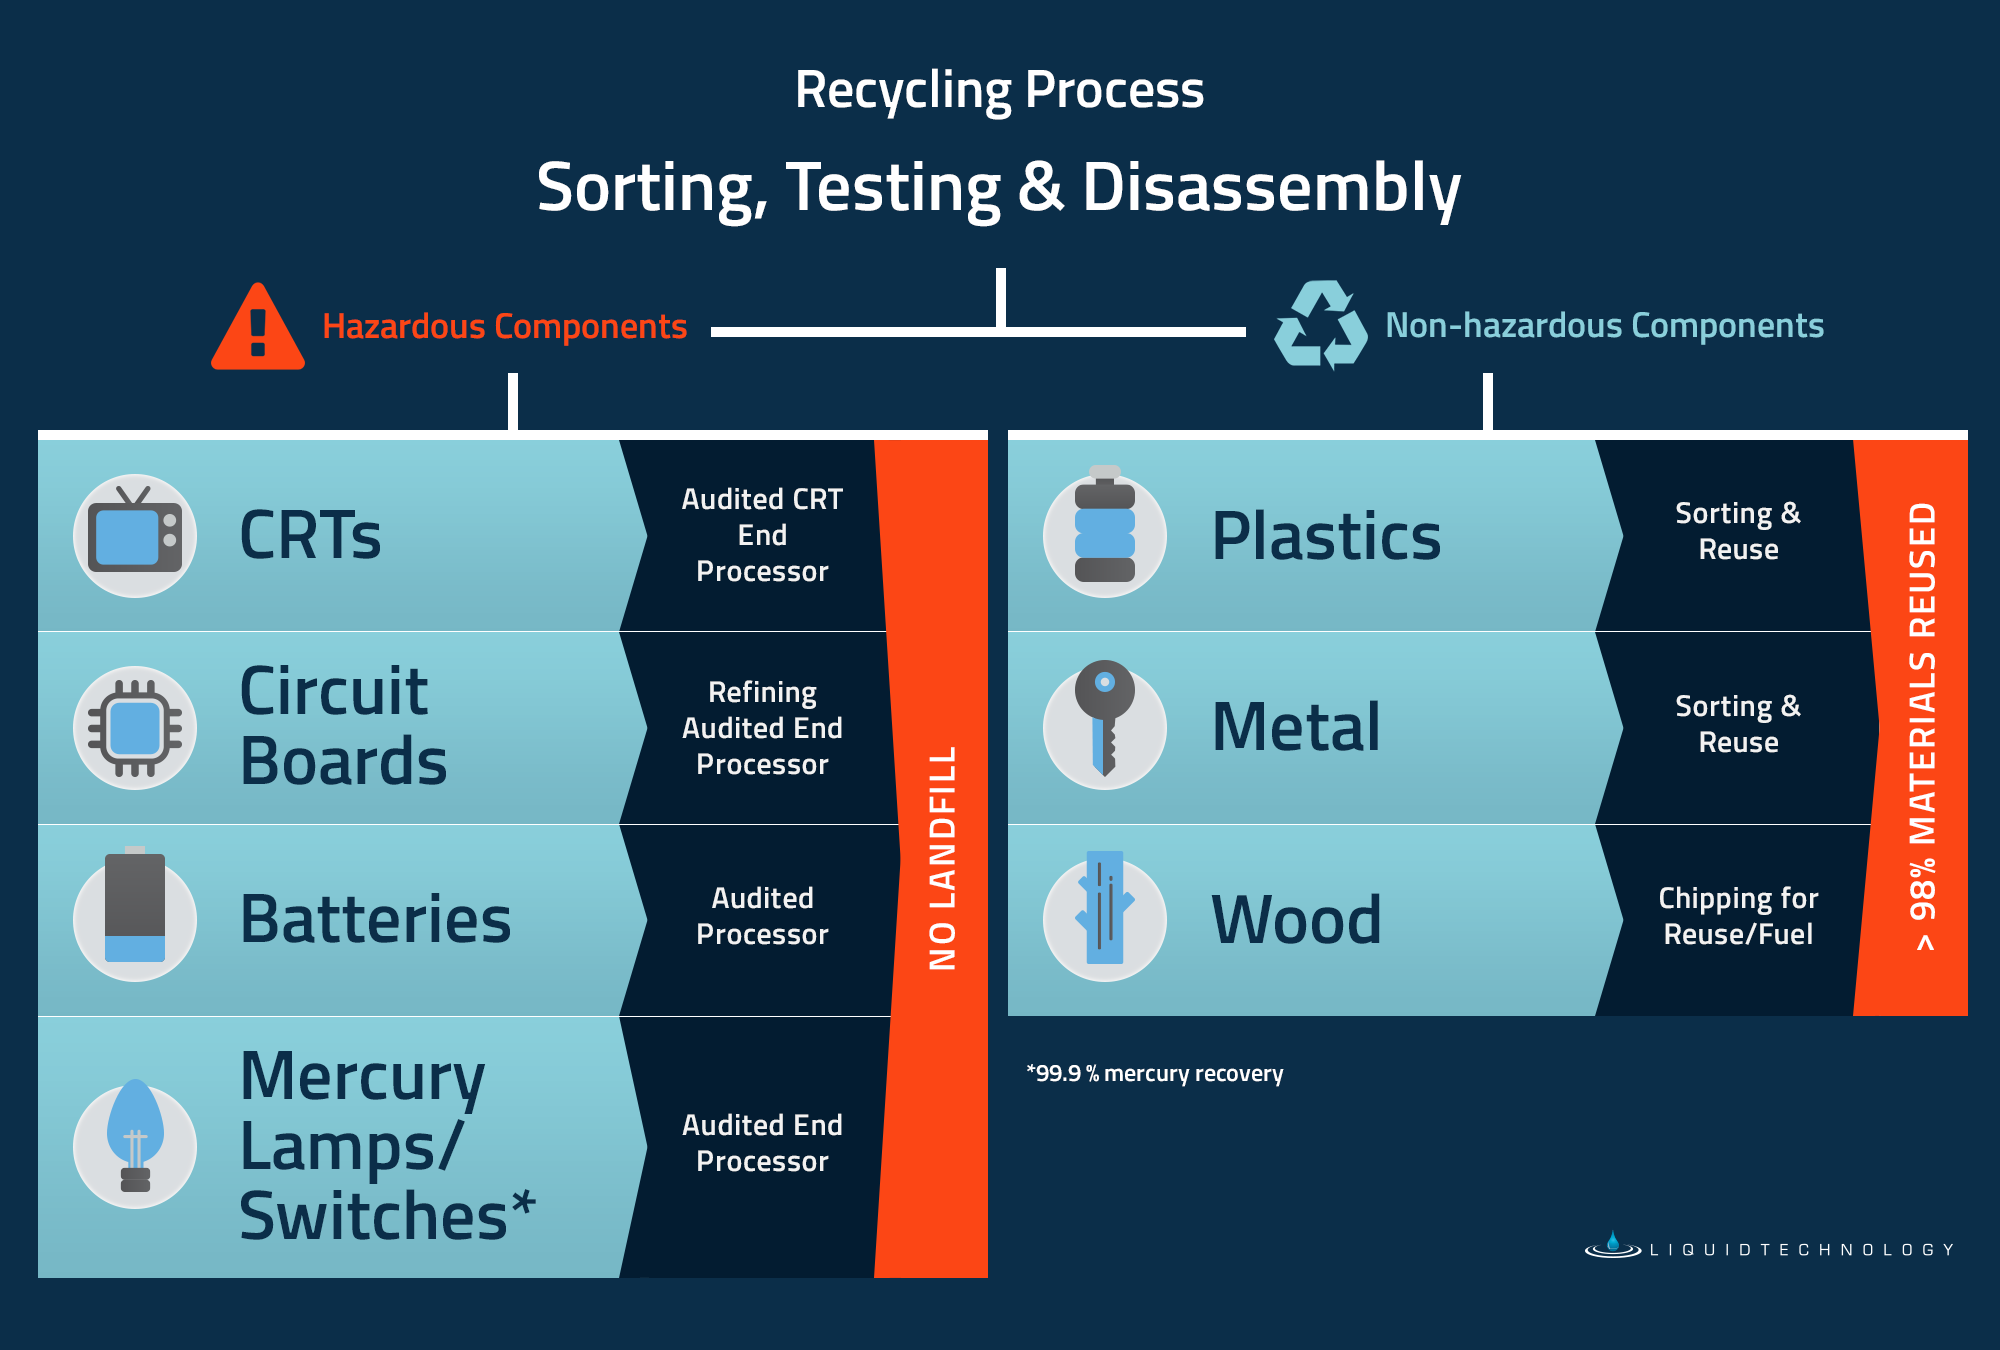 Recycling Process Diagram_revised